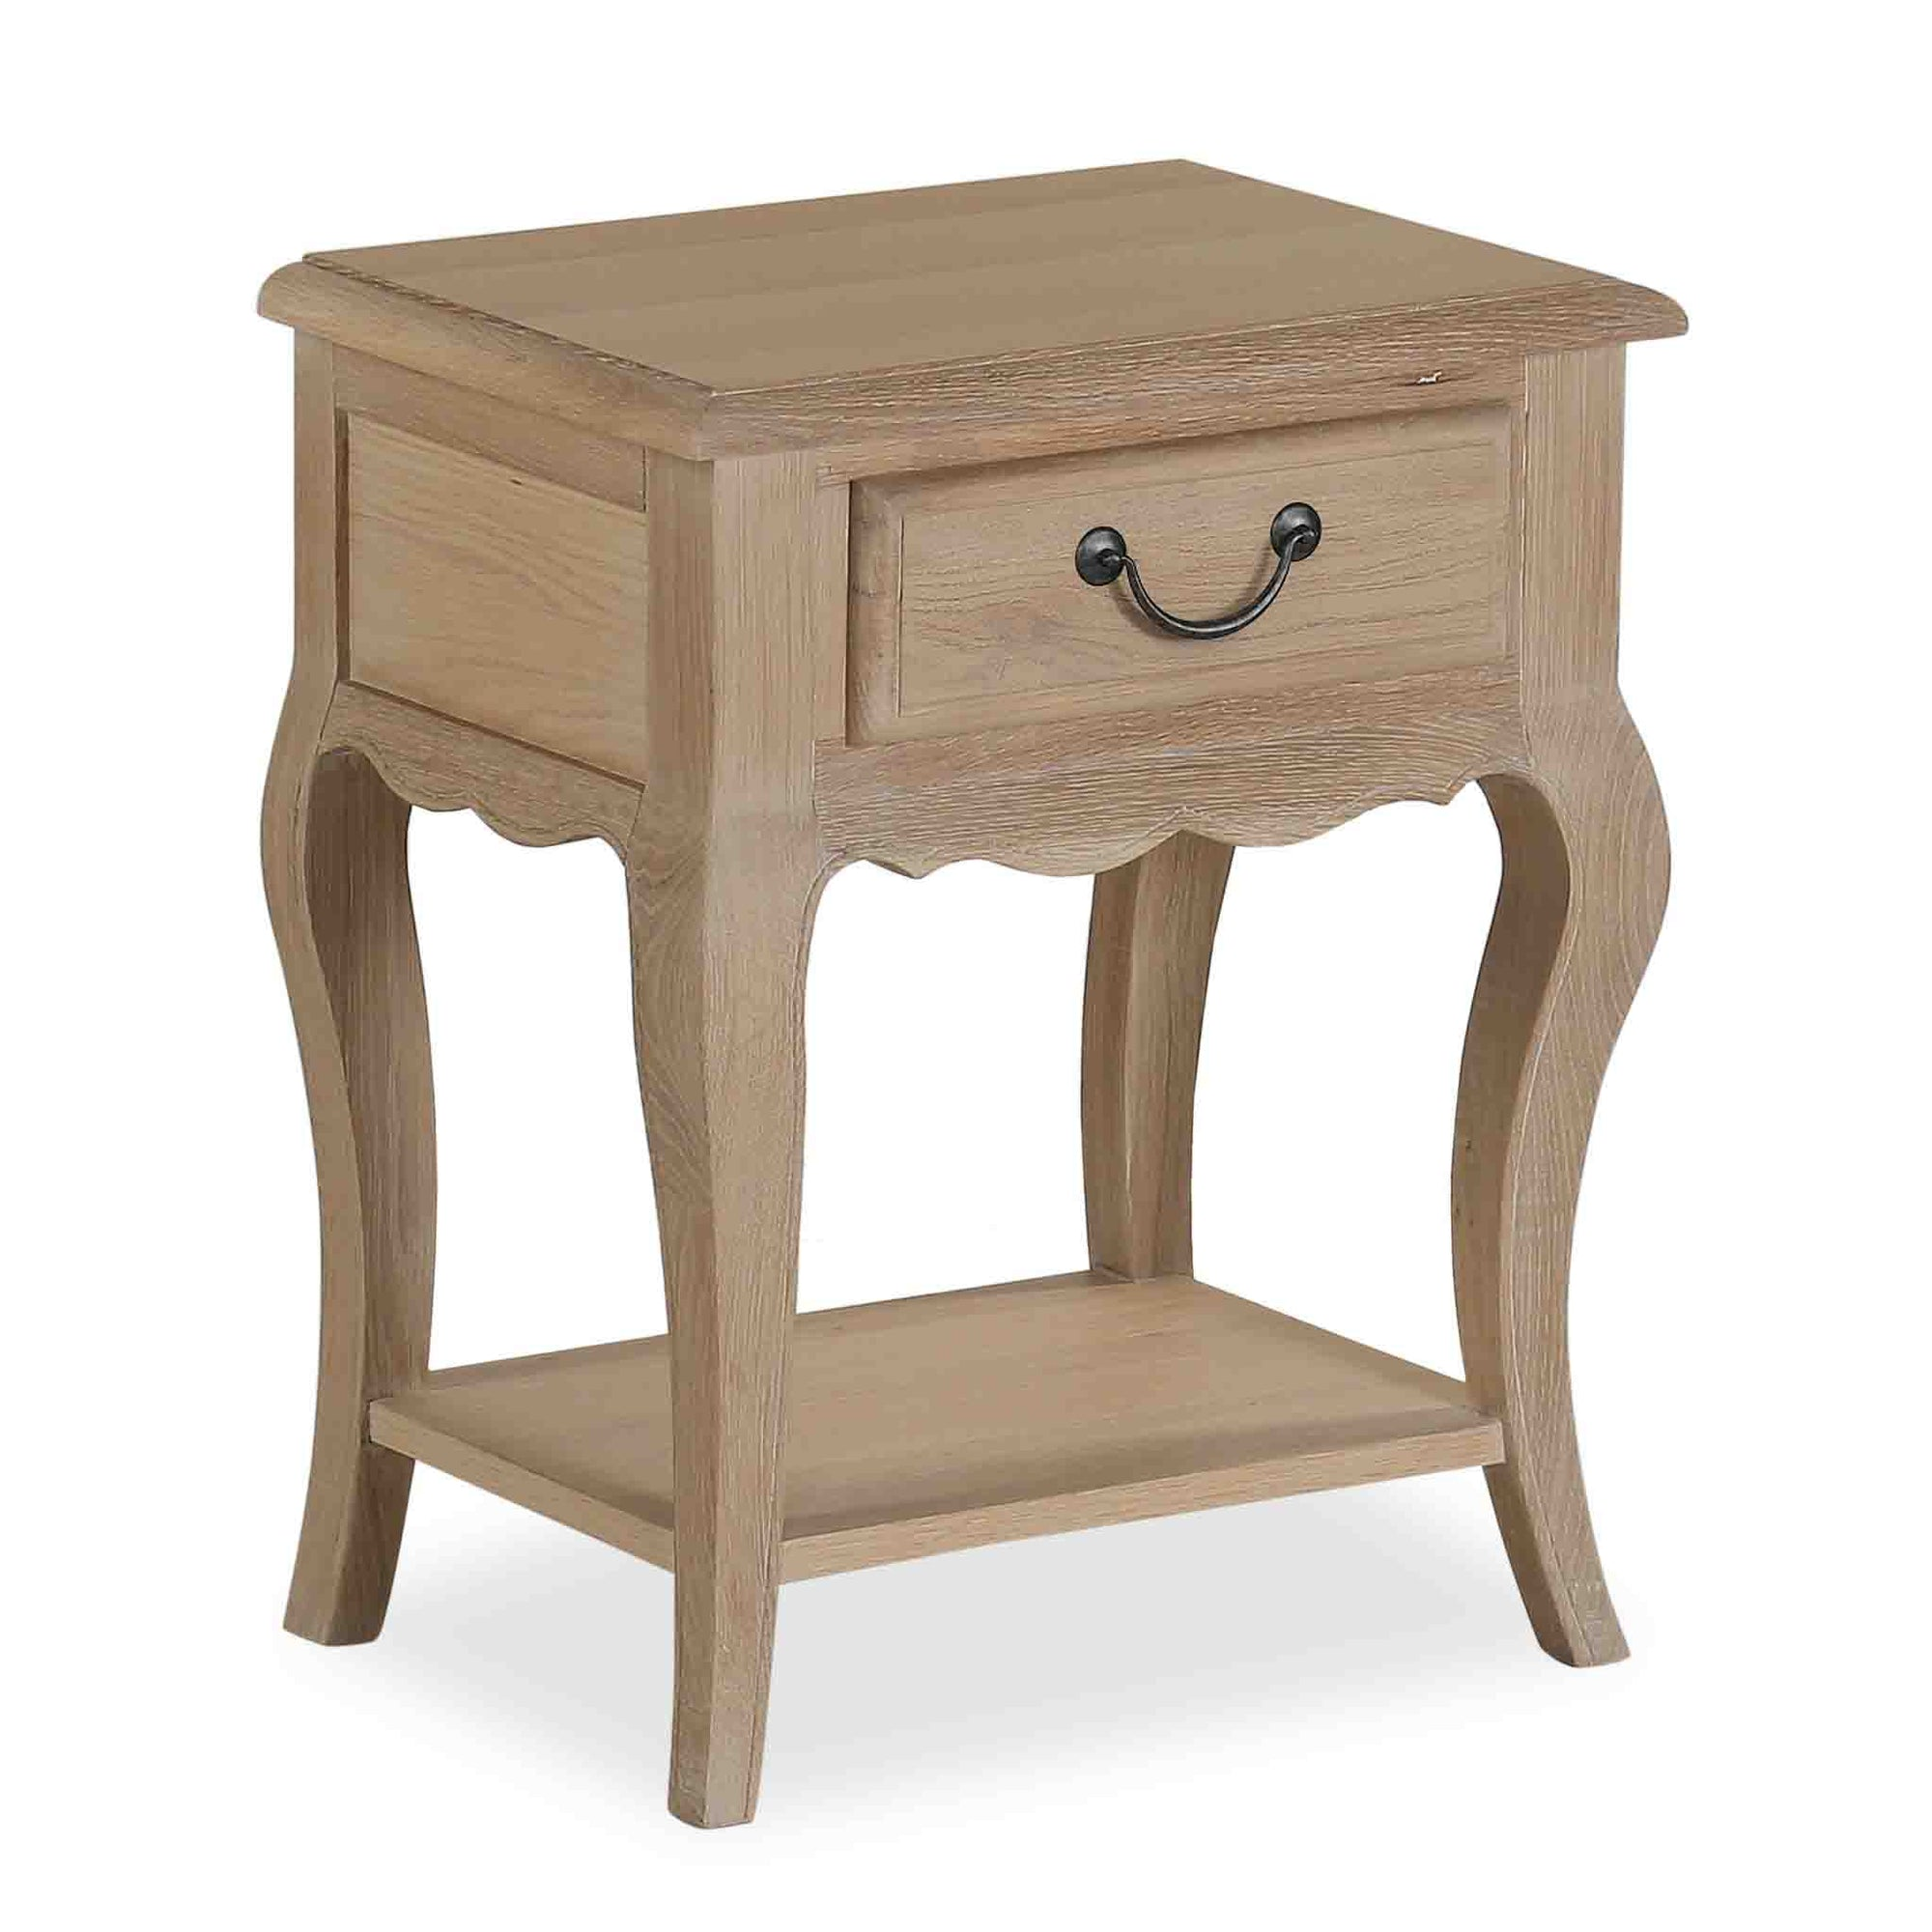 Harrogate Oak French Style Nightstand Table from Roseland Furniture